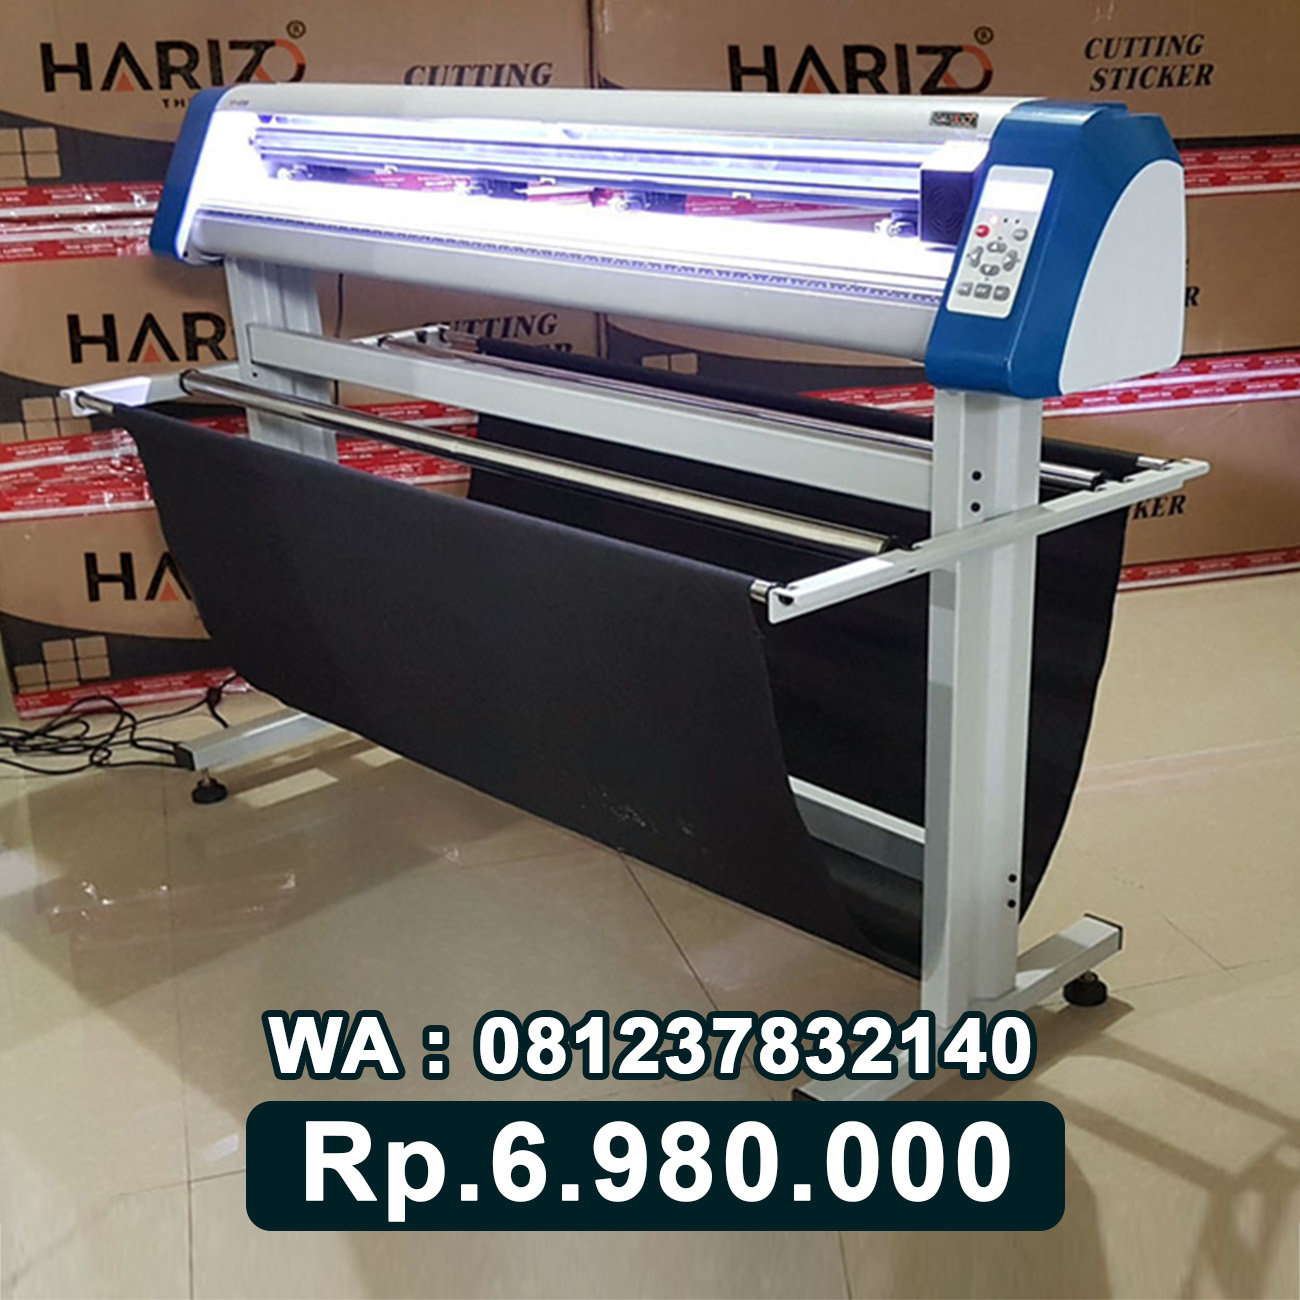 JUAL MESIN CUTTING STICKER HARIZO 1350 Tabanan